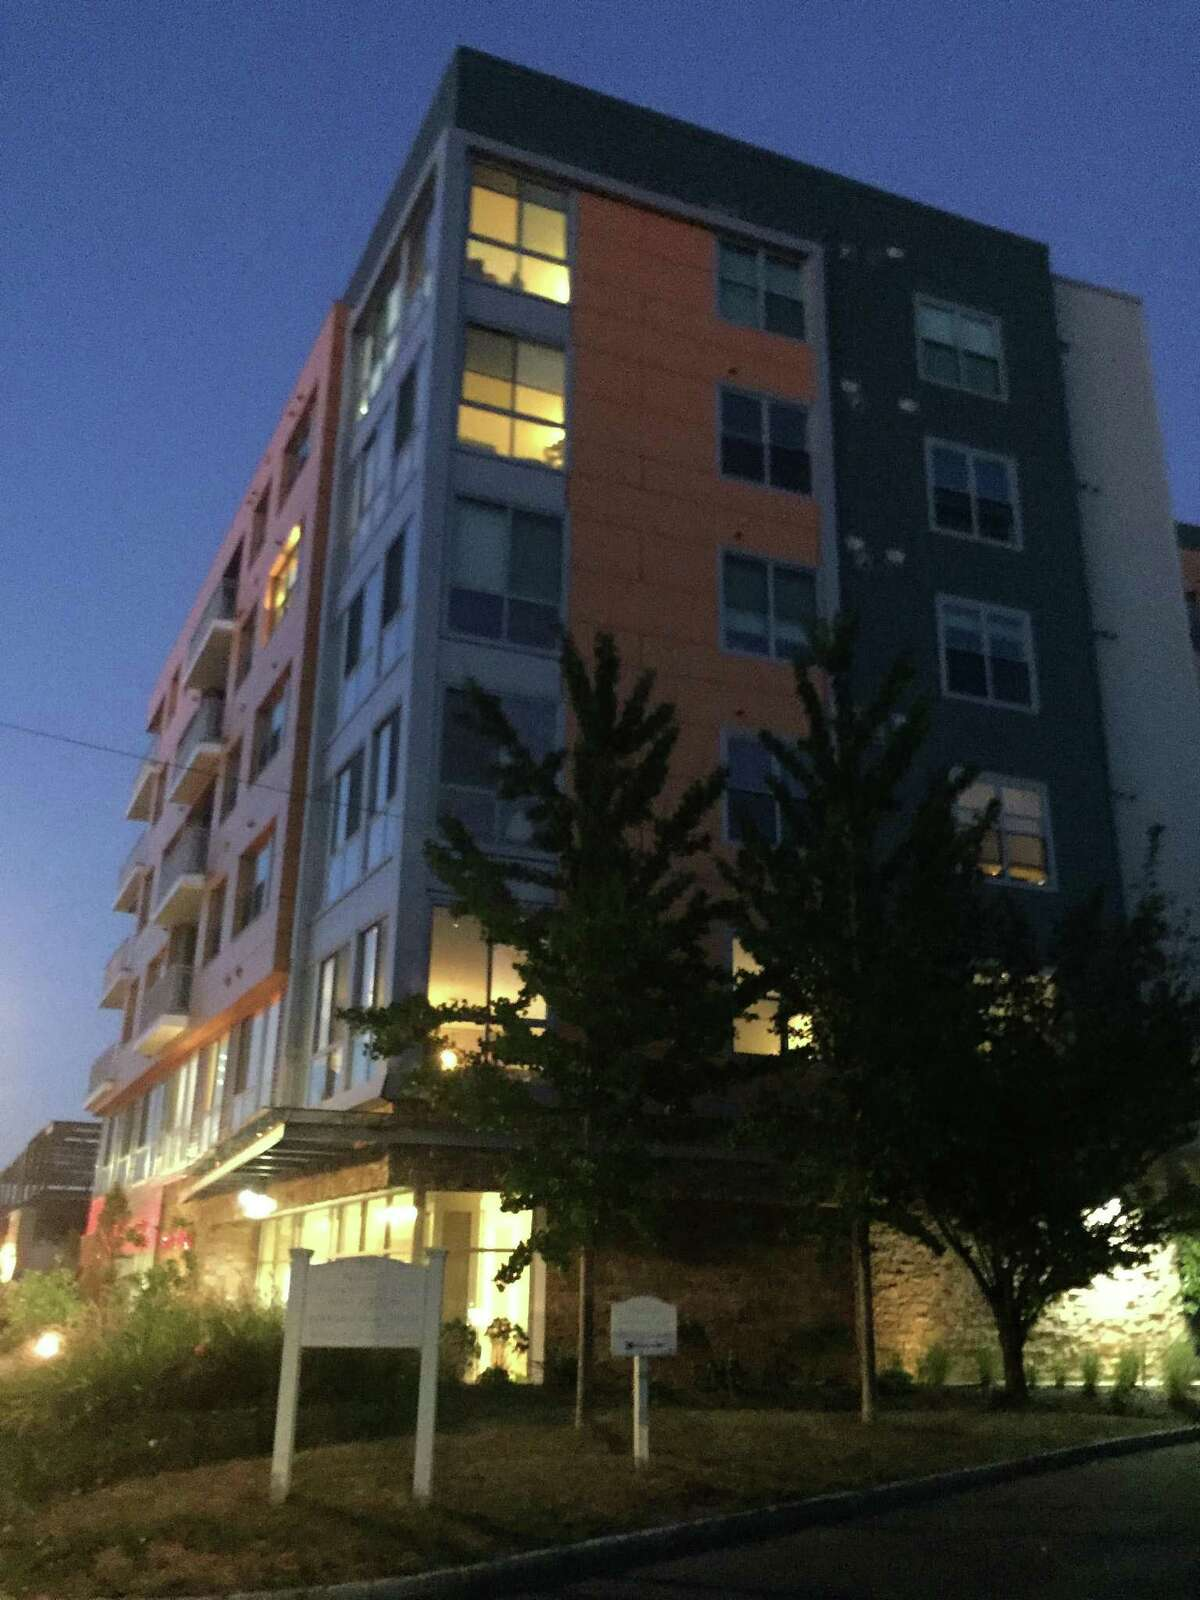 The Bedford Hall apartment complex, at 545 Bedford St., has sold for $24.5 million to a consortium of Bridgeport-based buyers.